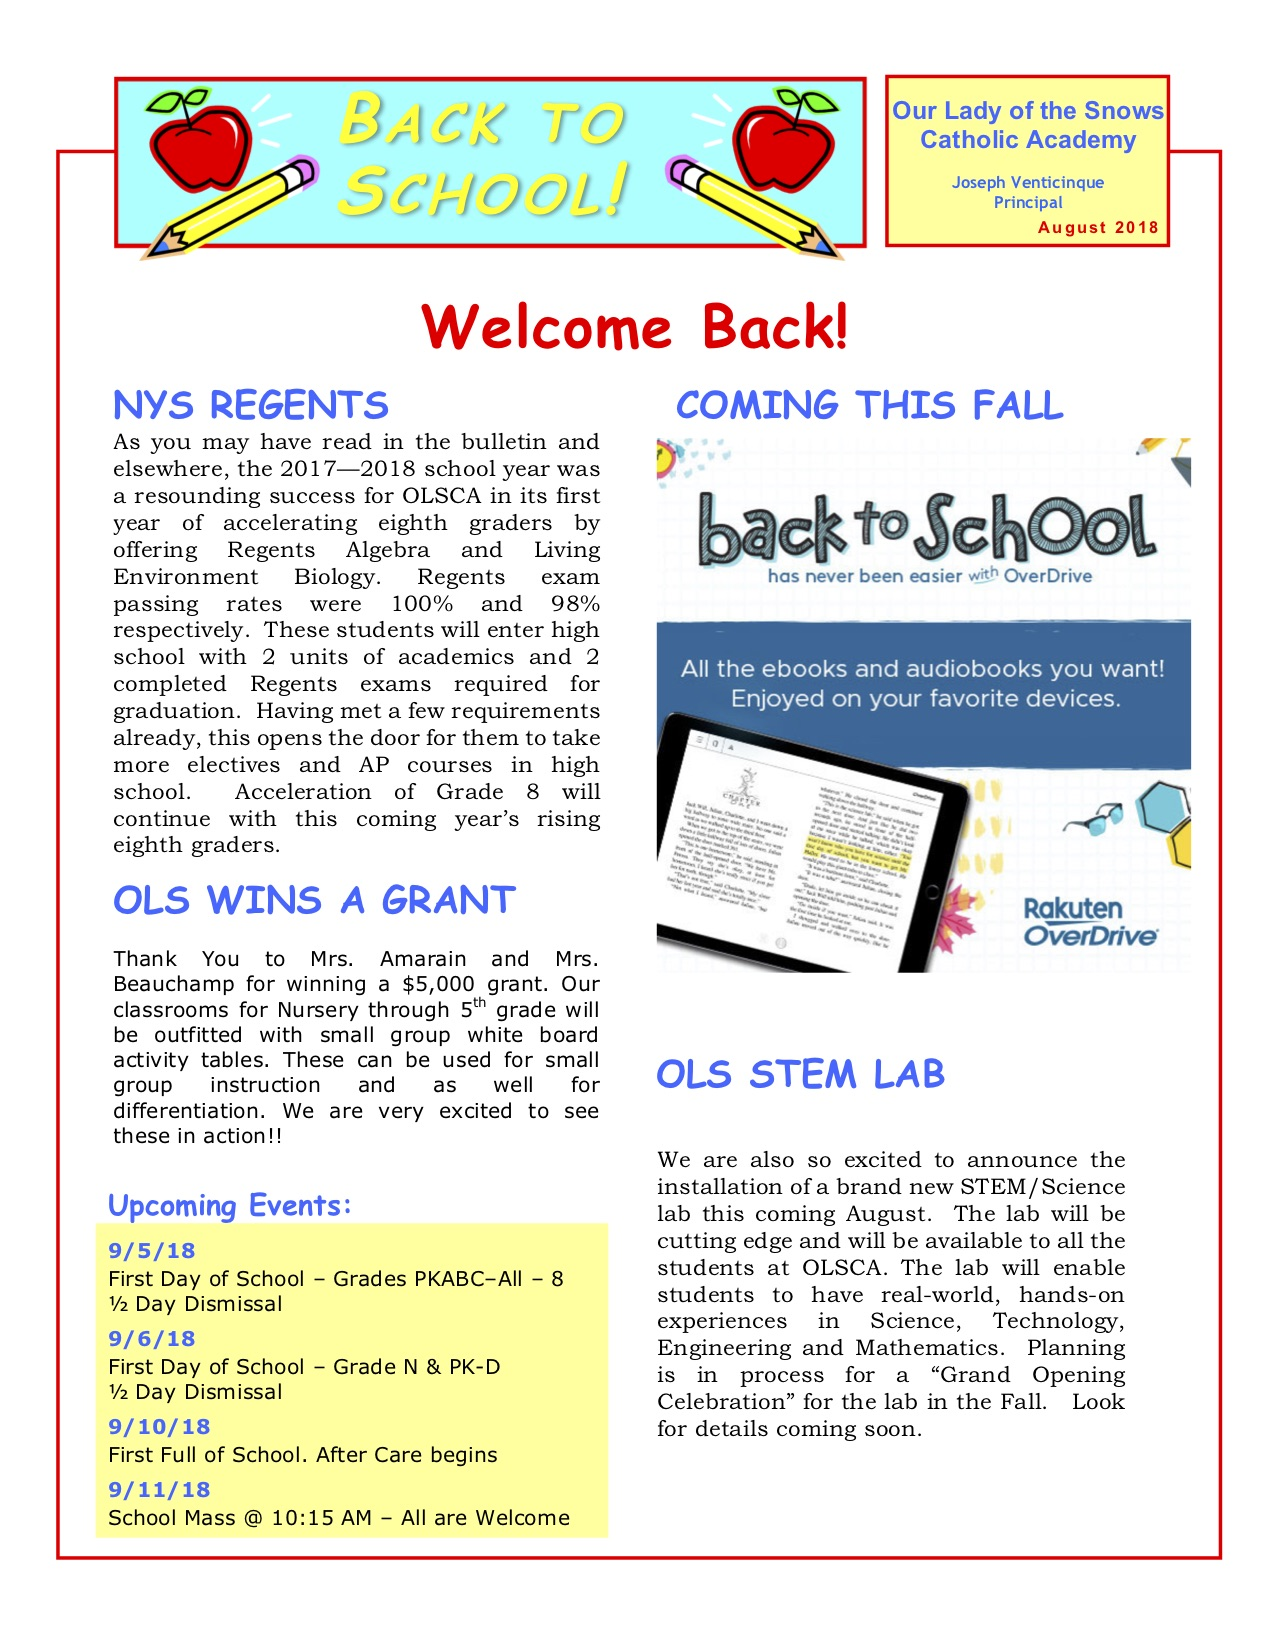 Welcome-back-newsletter-august-2018 Teacher Welcome Letter To Parents Template on teacher welcome template, teacher introduction template, teacher homework template, teacher supply list template, teacher calendar template, teacher conference template, teacher seating chart template, teacher about me template, teacher application template, teacher grading template, teacher brochure template, meet the teacher template, teacher newsletter template, teacher curriculum template, teacher contract template, teacher schedule template, teacher handouts template,